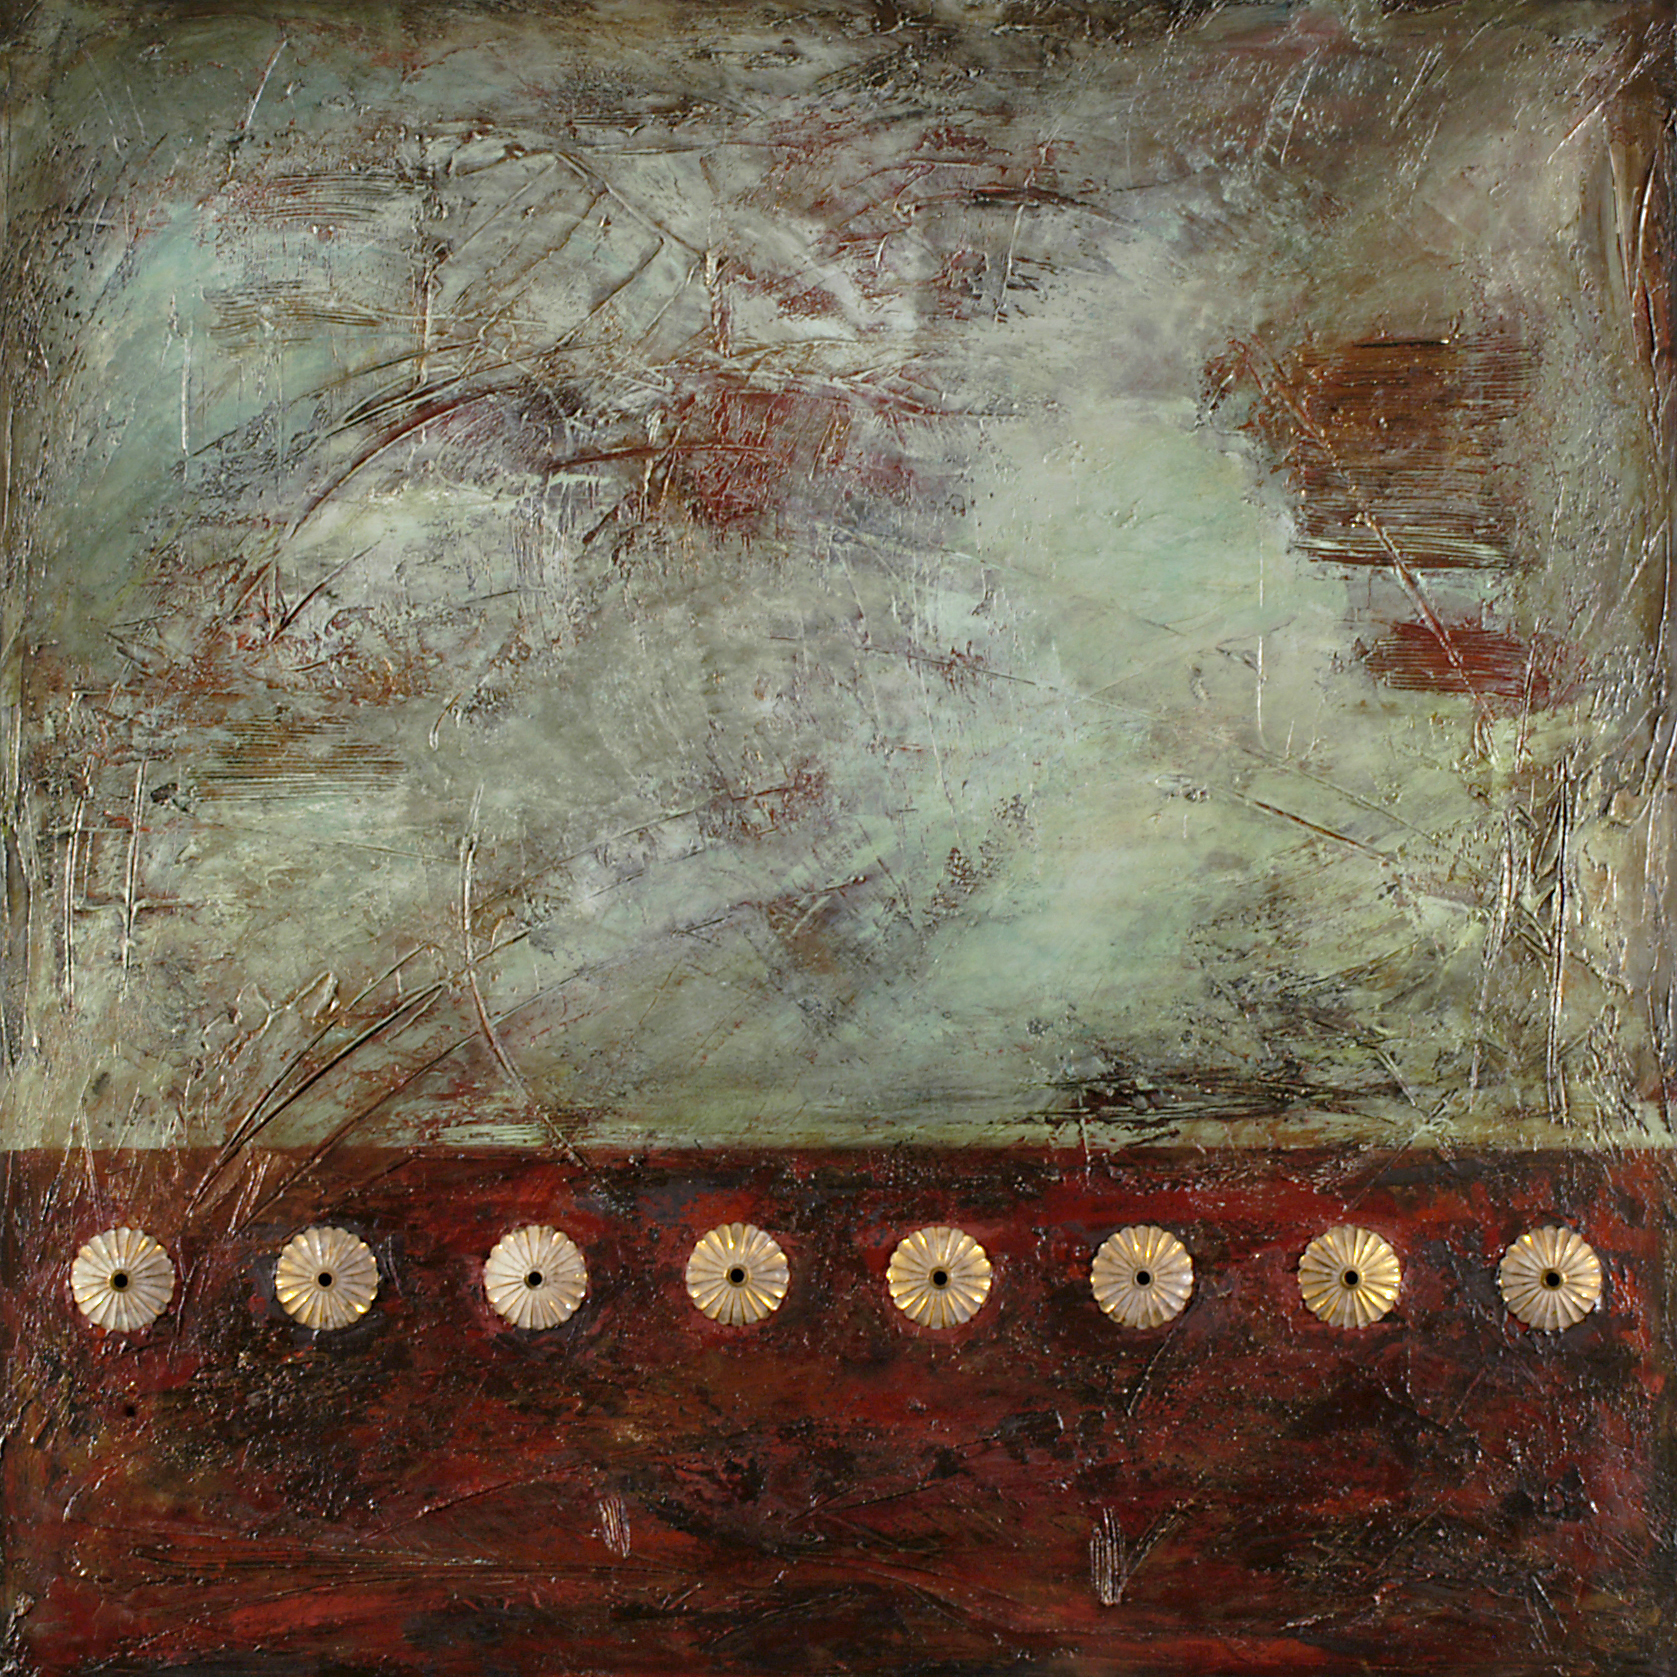 rogue one  48 x 48 x 1.5 inches  mixed media & brass on canvas  SOLD